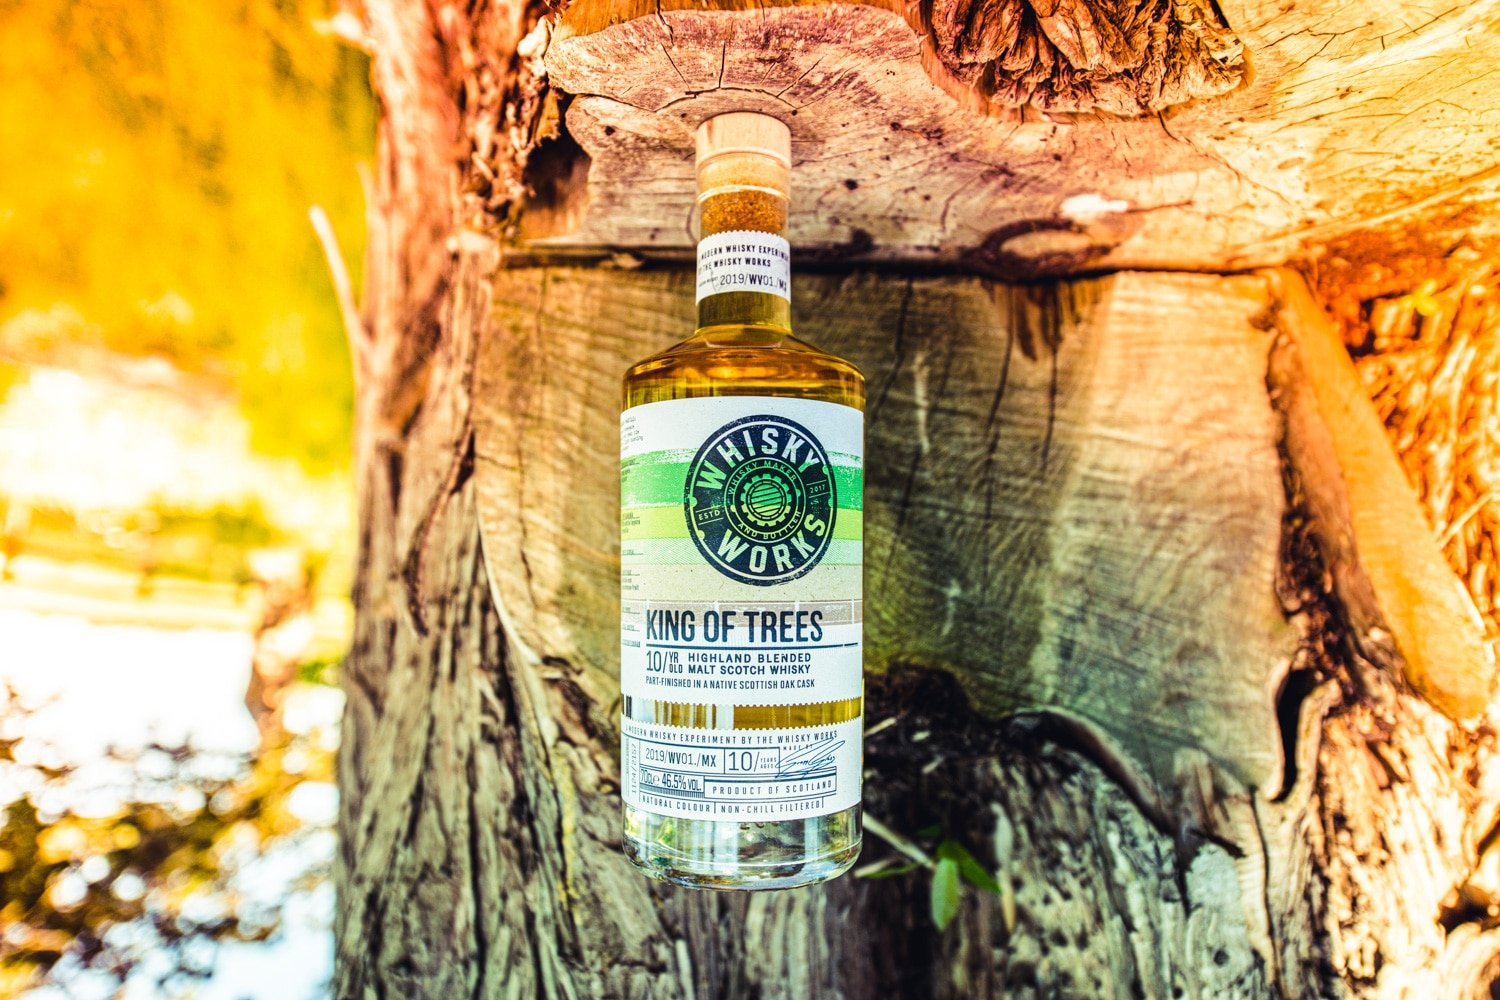 August 2021 – Whisky Works King of Trees 10Yr, Summerton Whisky Club